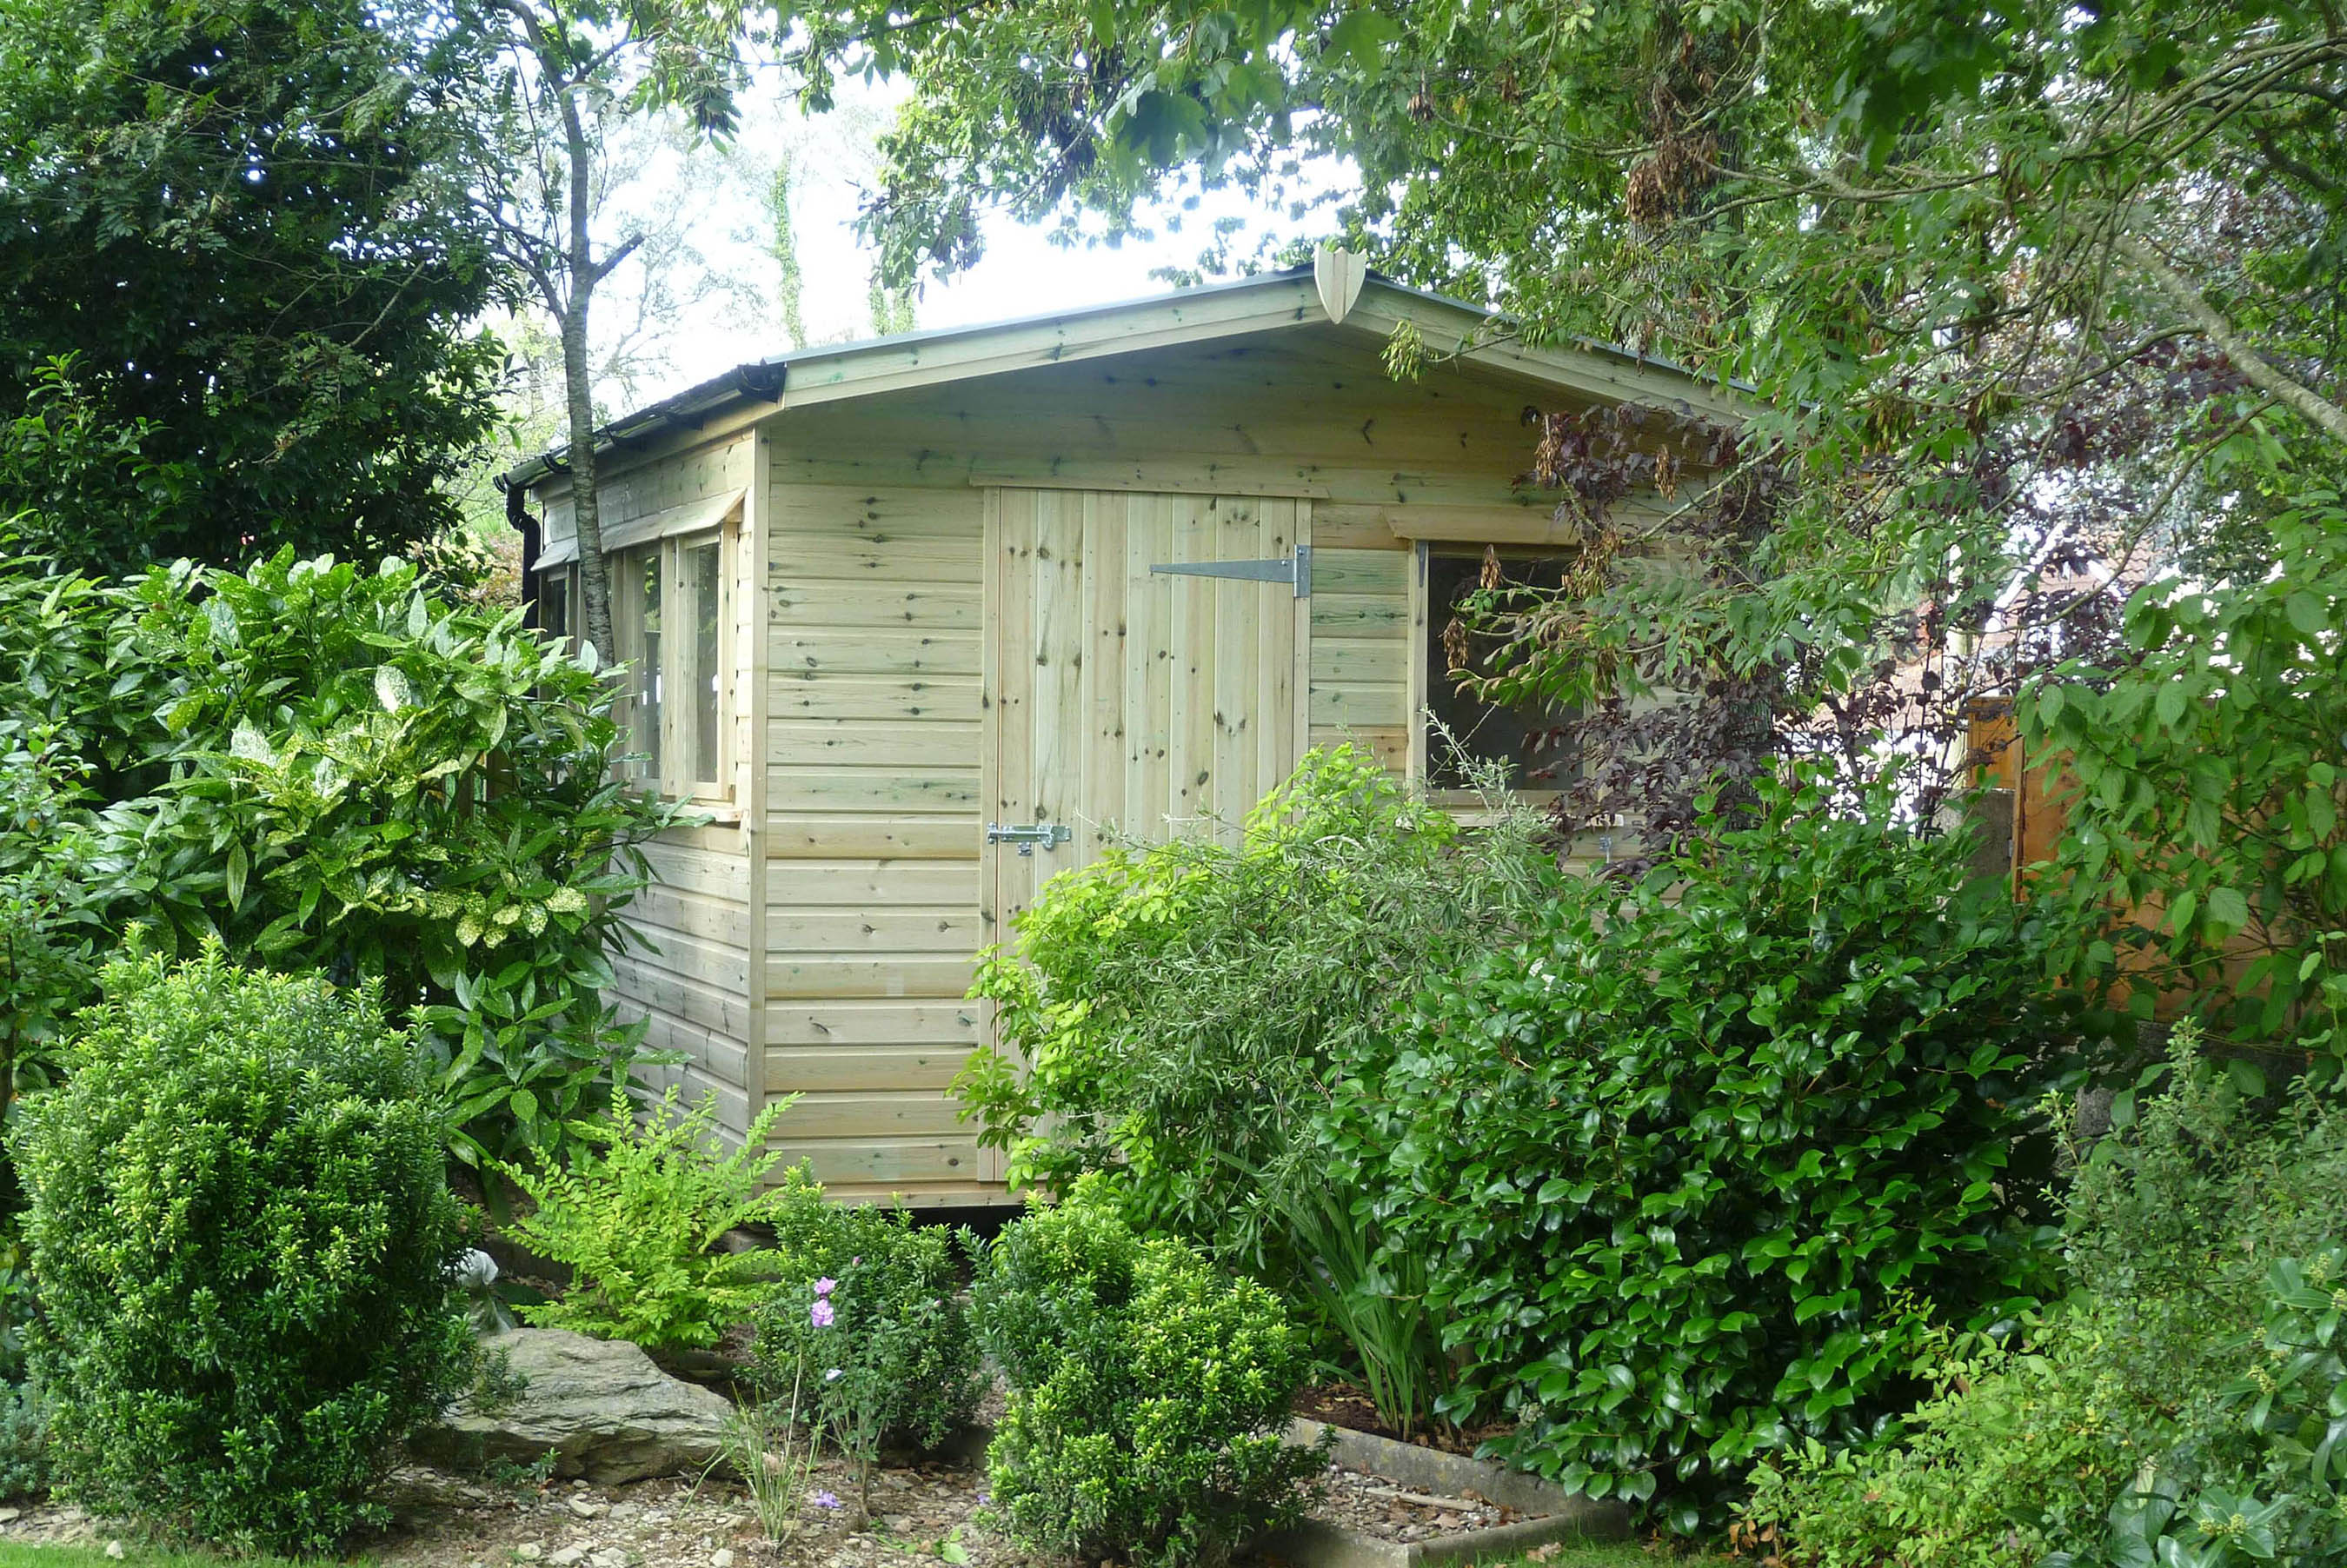 Garden shed with extended roof over entrance